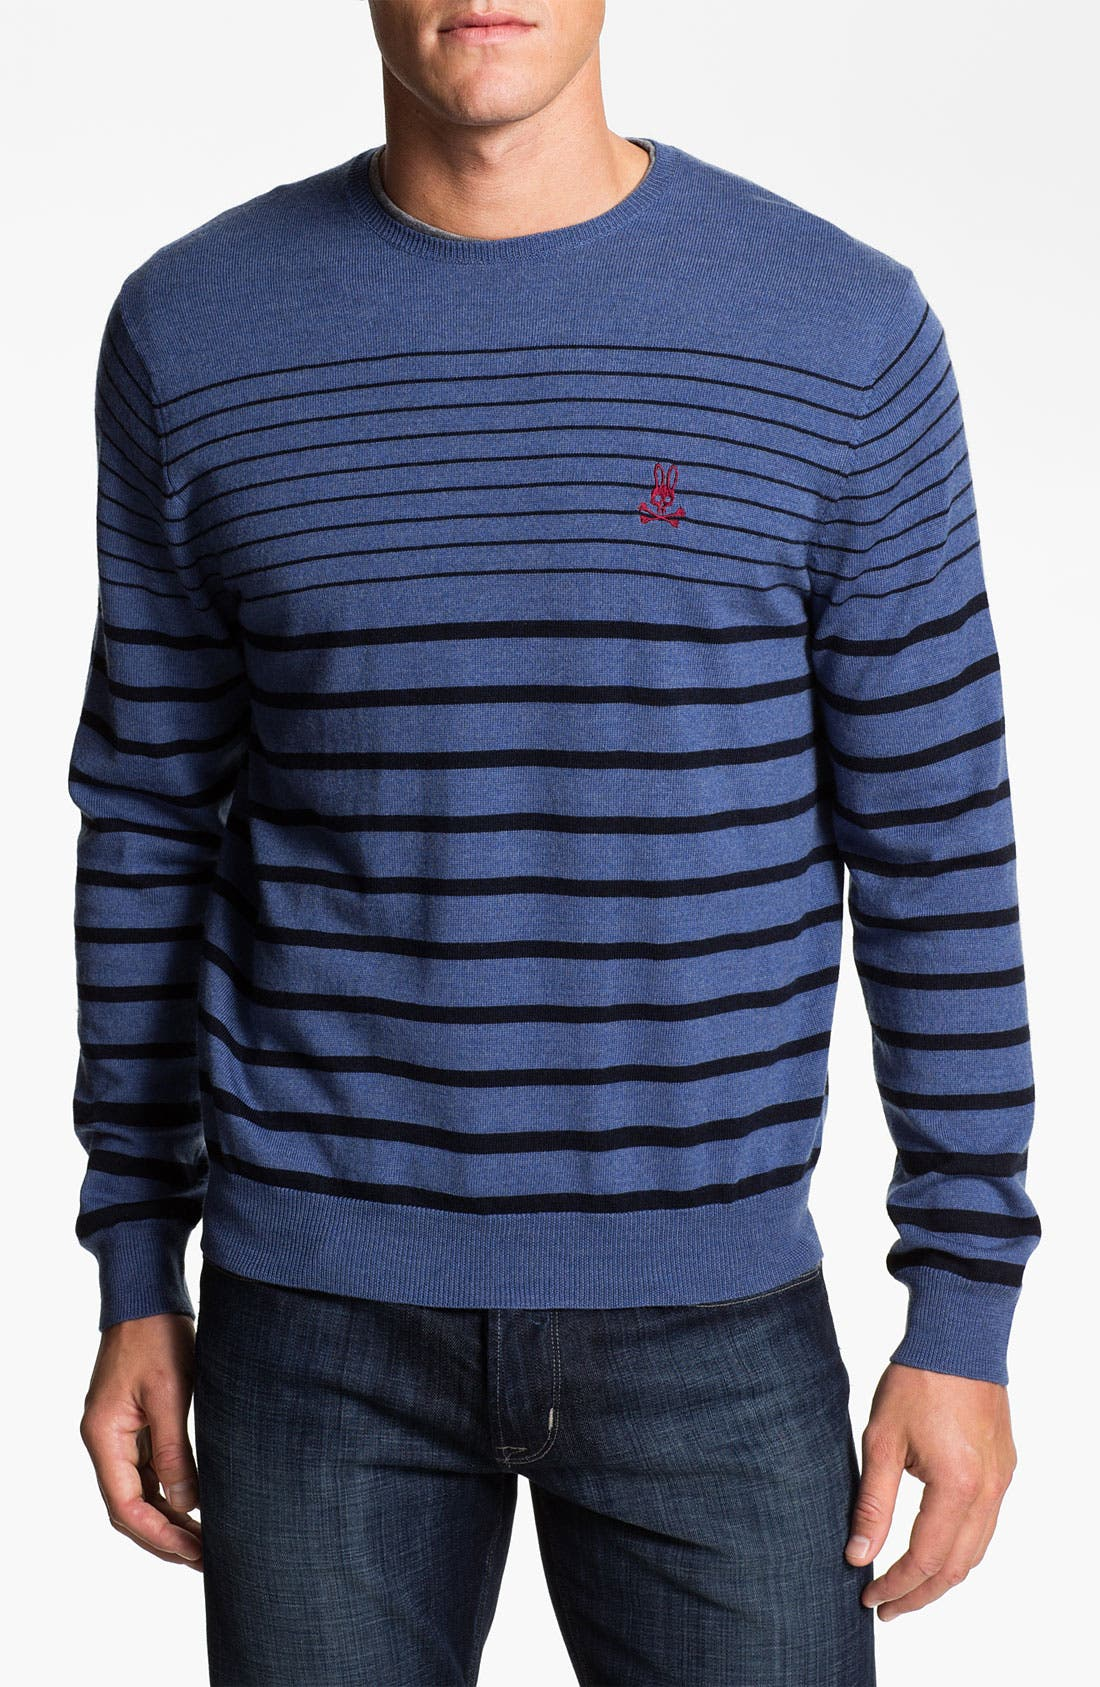 Alternate Image 1 Selected - Psycho Bunny Stripe Merino Wool Sweater